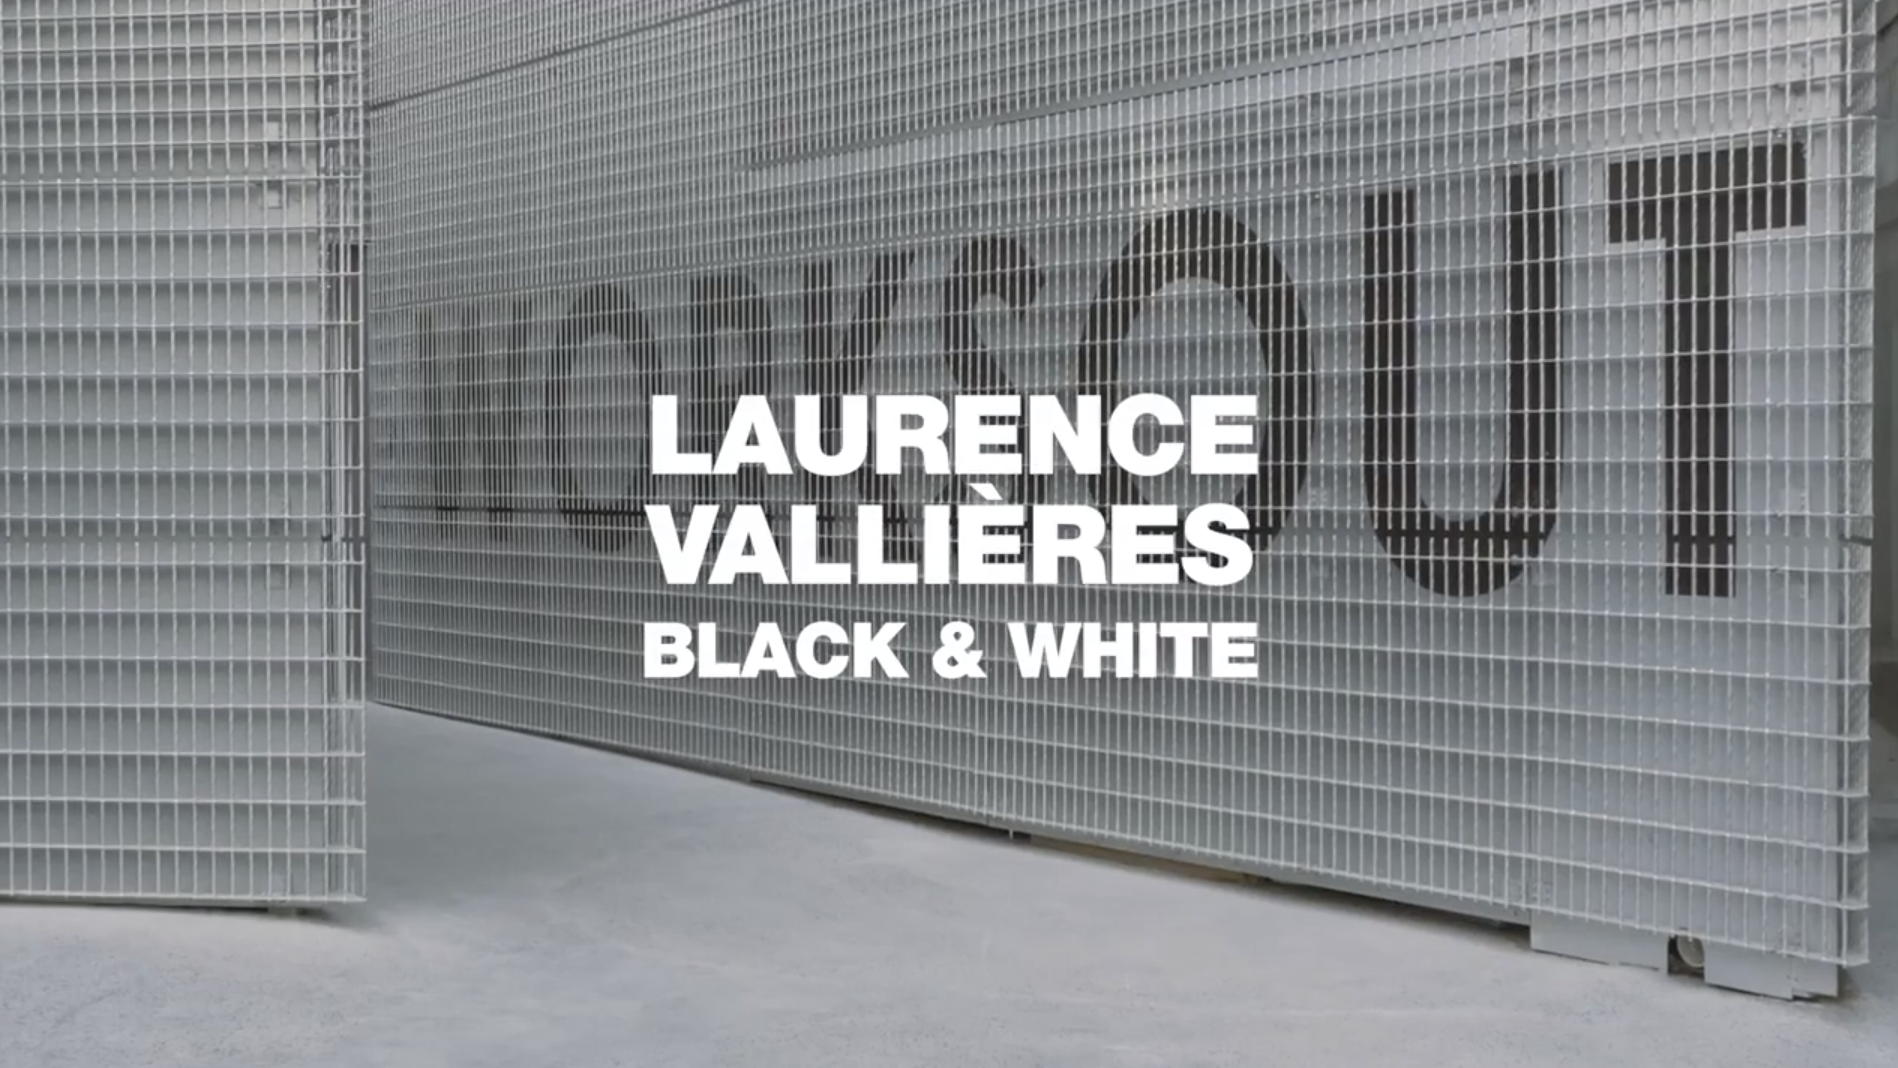 WORKSOUT X LAURENCE VALLIERES